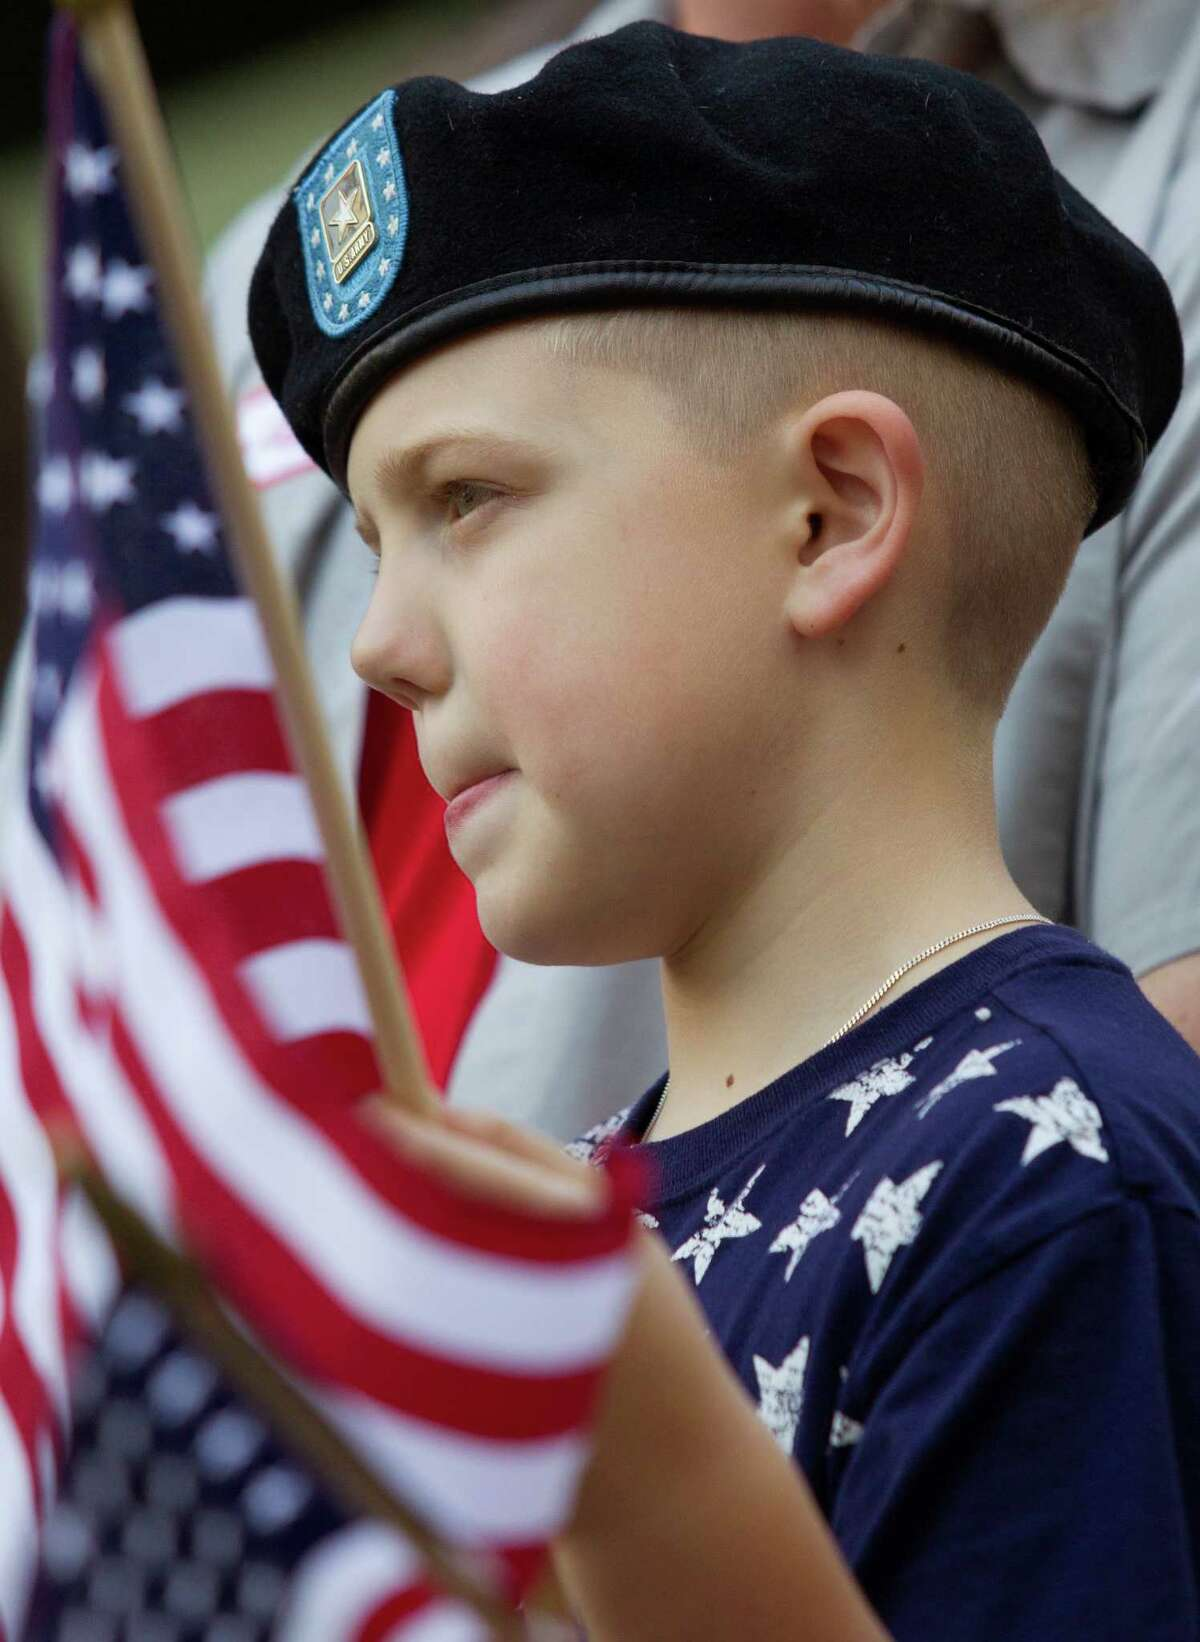 """Connor Price, 9, waves his American Flags during the """"Houston Salutes American Heroes"""" celebration outside City Hall on Monday, Nov. 11, 2013, in Houston. The celebration included a Veterans job and health fair along with the annual parade that included dozens of local high school bands and organizations."""